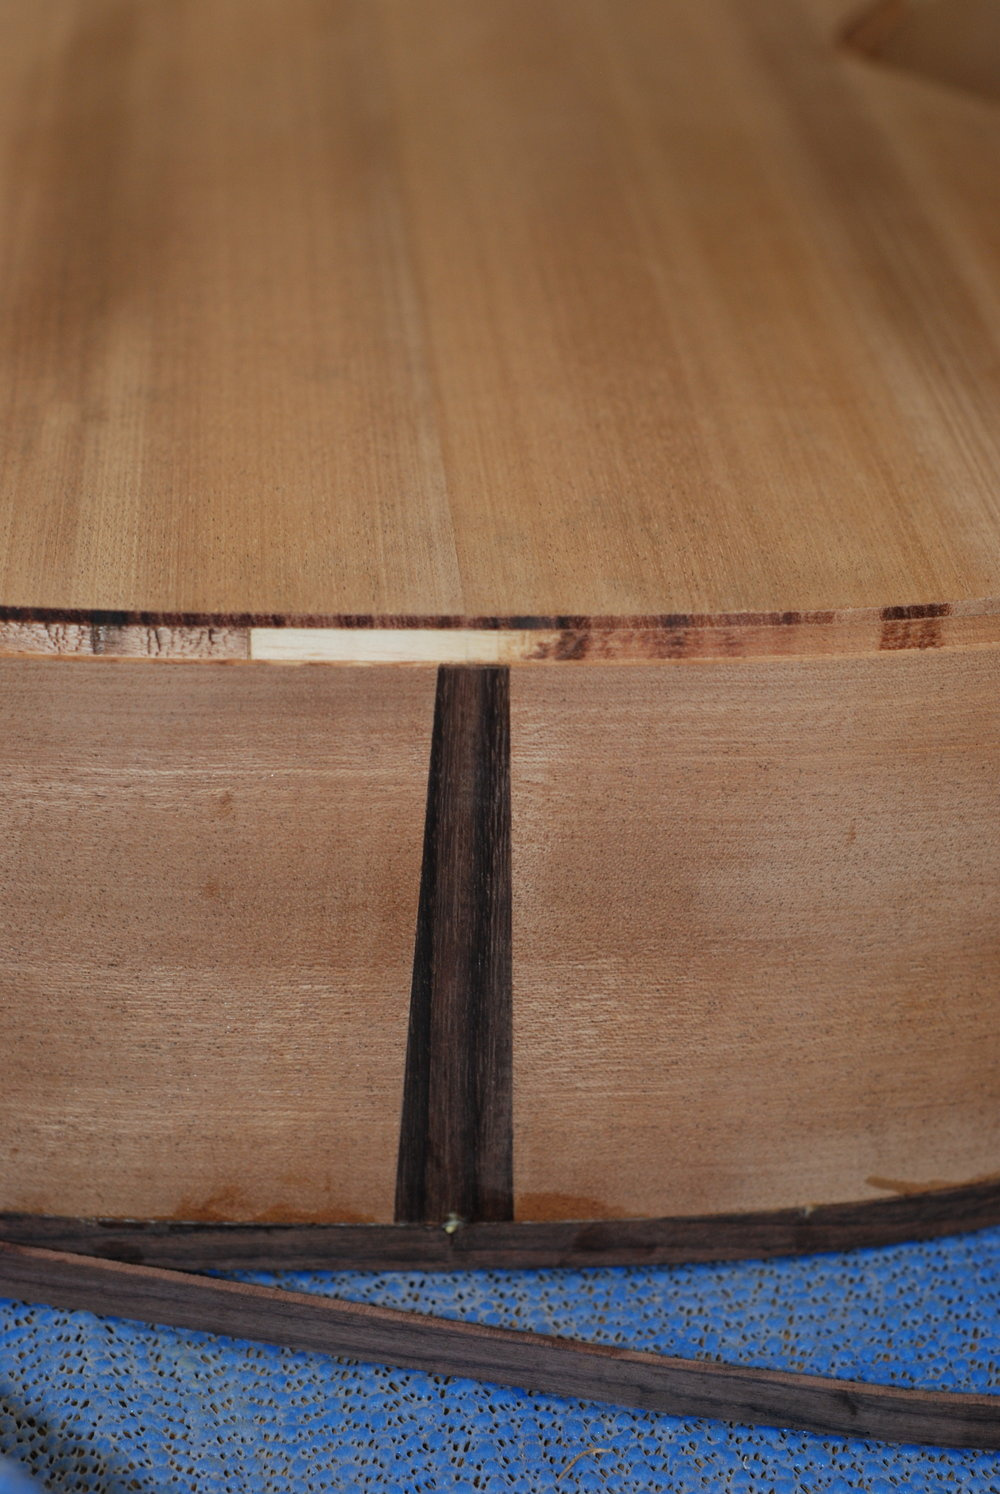 tail wedge trimmed down to same height as binding wedge.JPG